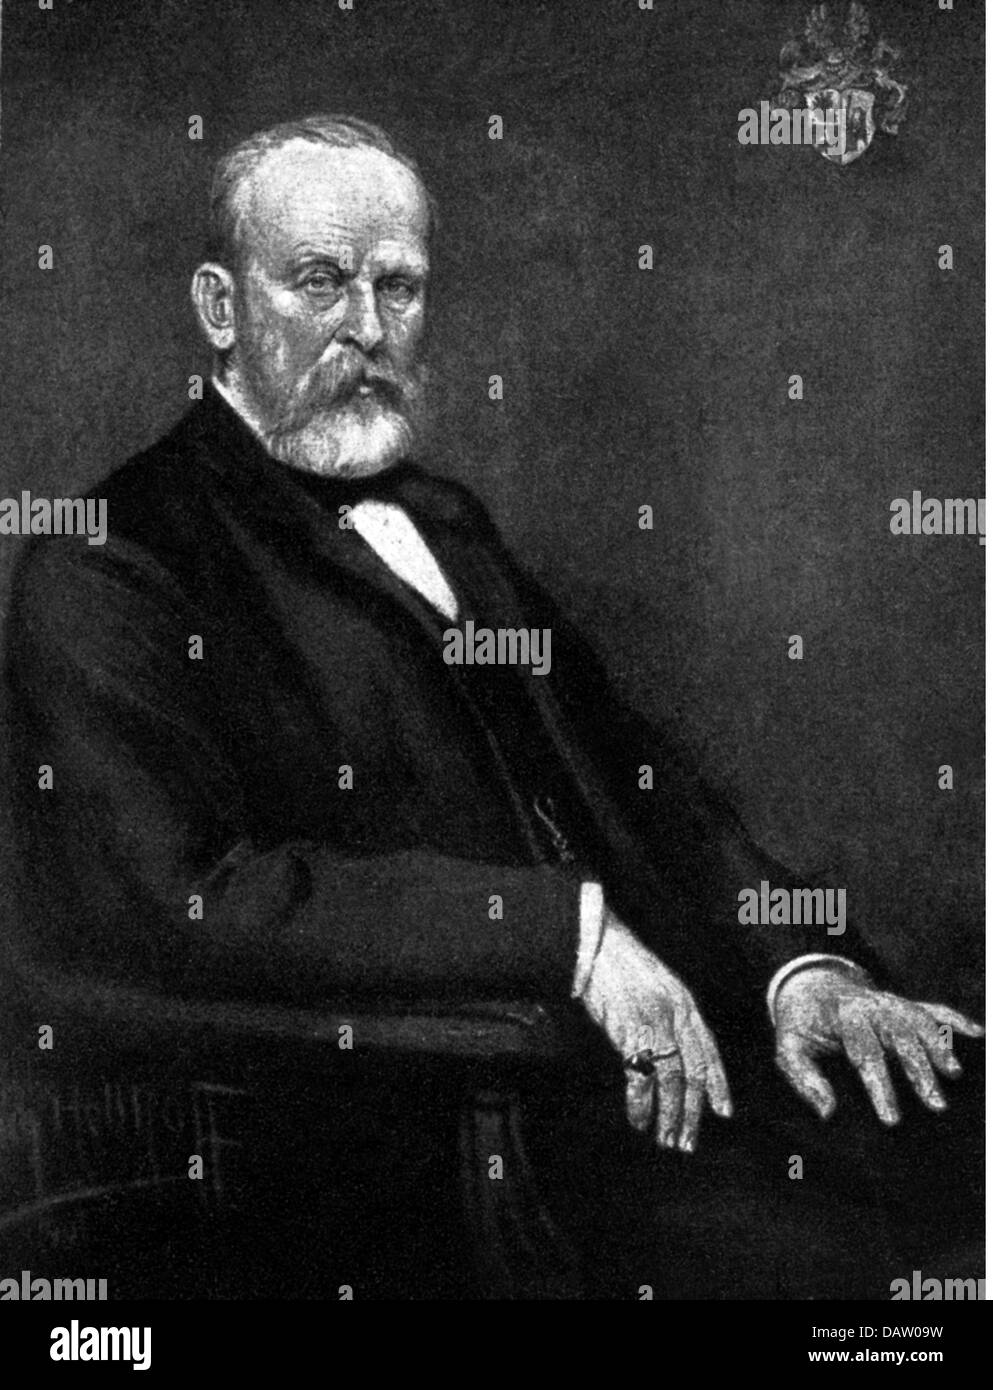 Richthofen, Ferdinand Baron von, 5.5.1833 - 6.10.1905, German traveler, geologist, geographer, half length, based - Stock Image